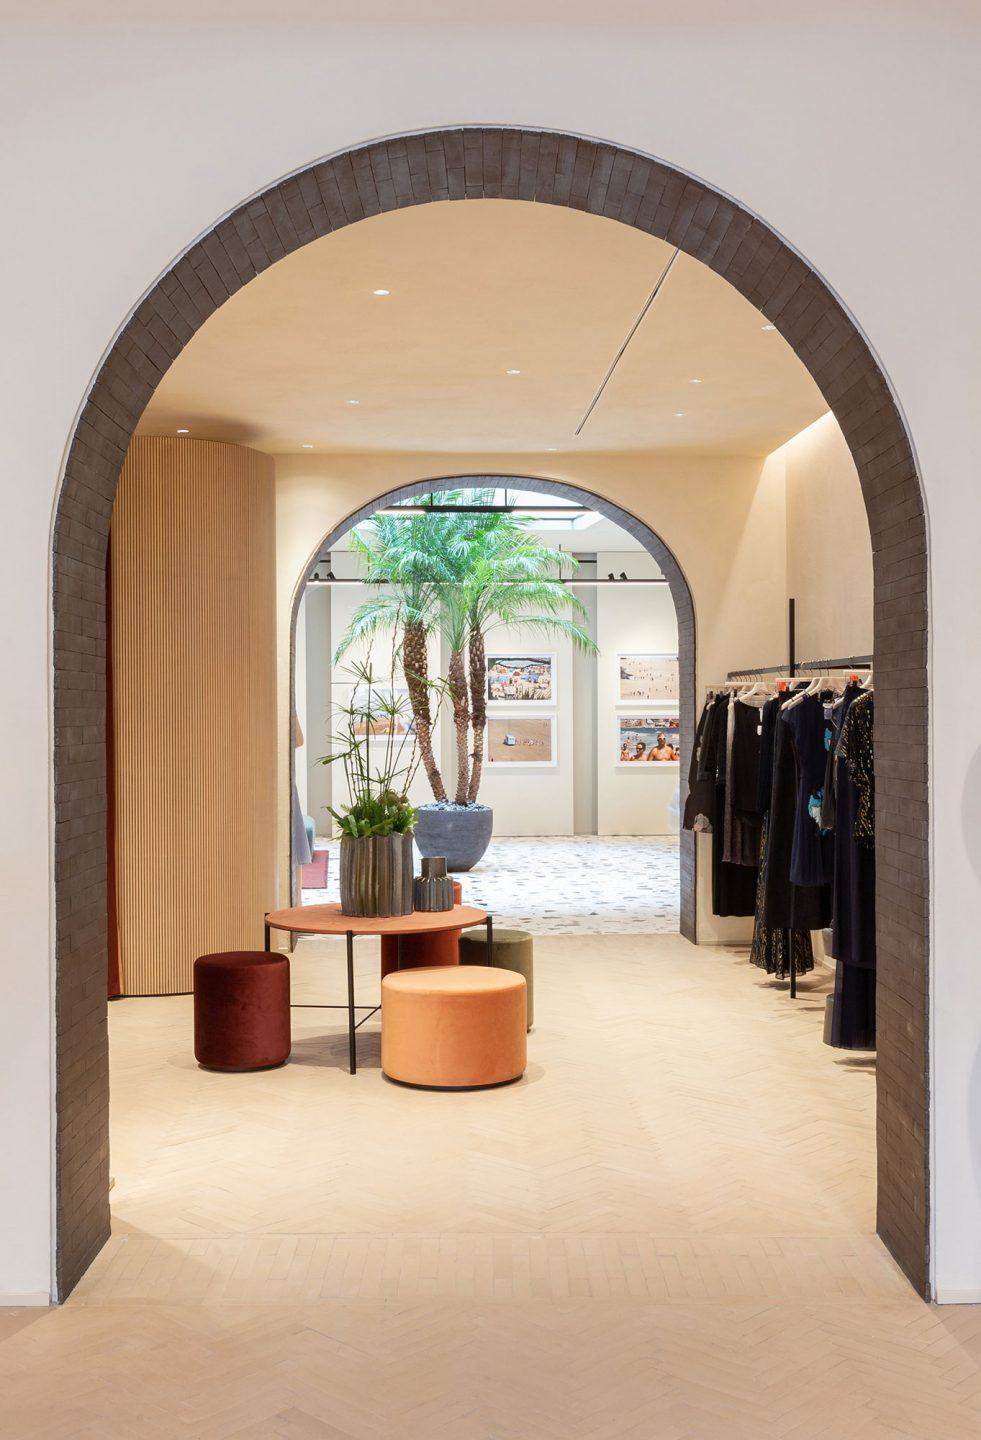 MAX&Co. Concept Store - tables | <strong>MAX&CO. CONCEPT STORES - TABLES</strong> | progetto <strong>Duccio Grassi Architects</strong> | ph © <strong>Jessica Soffiati, Francesca Iovene</strong>